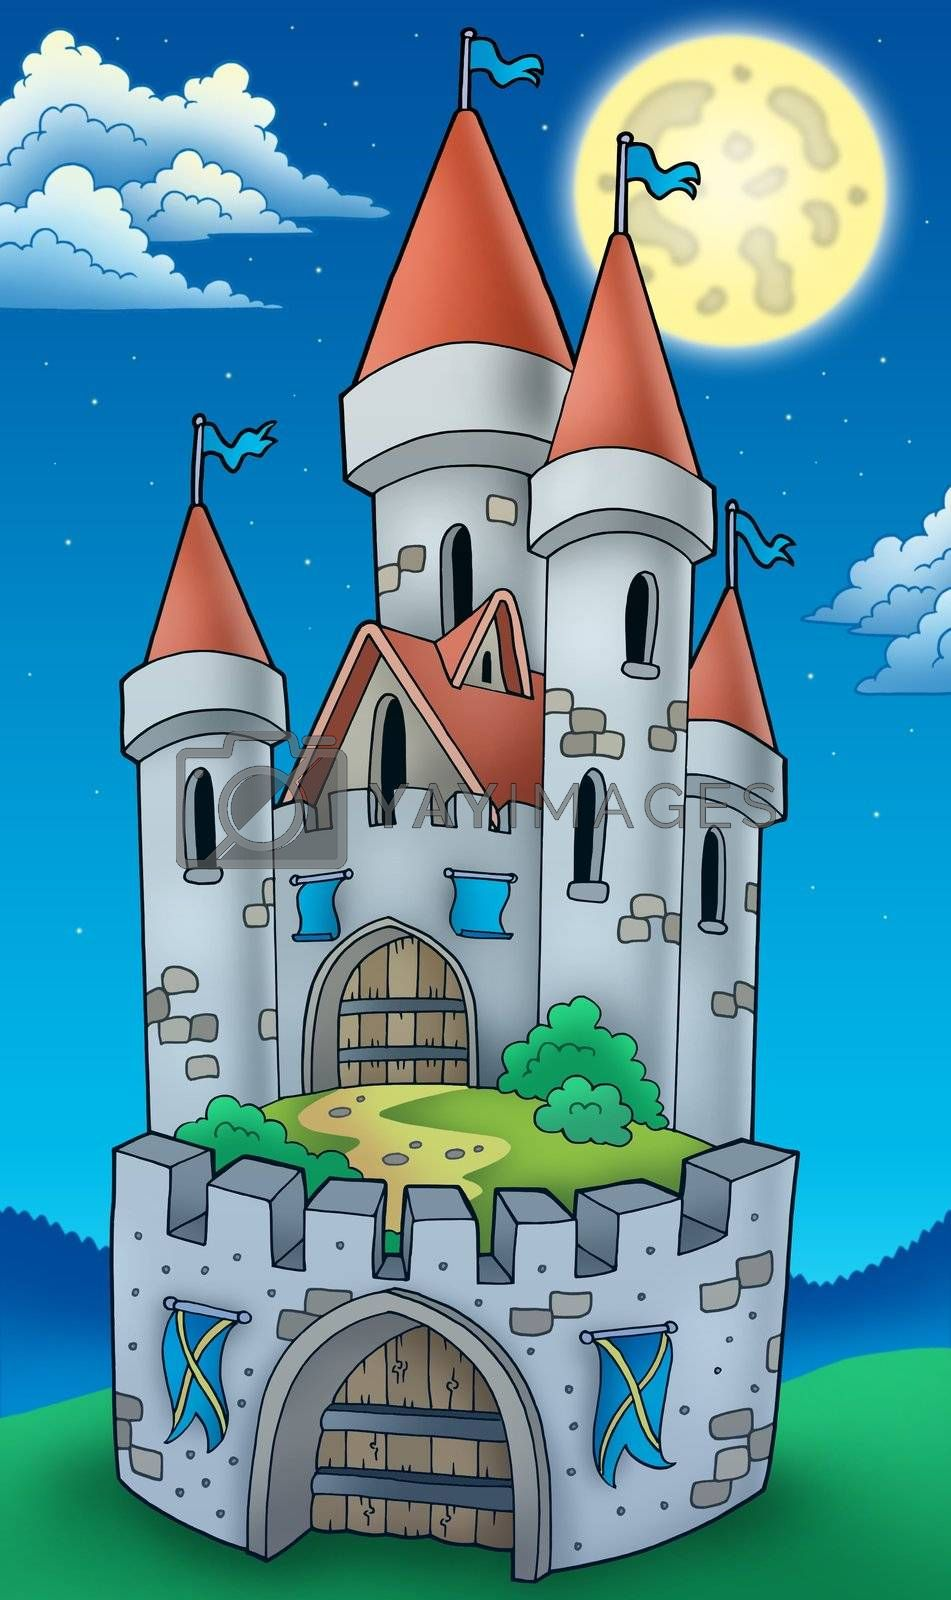 Night view on tall castle - color illustration.